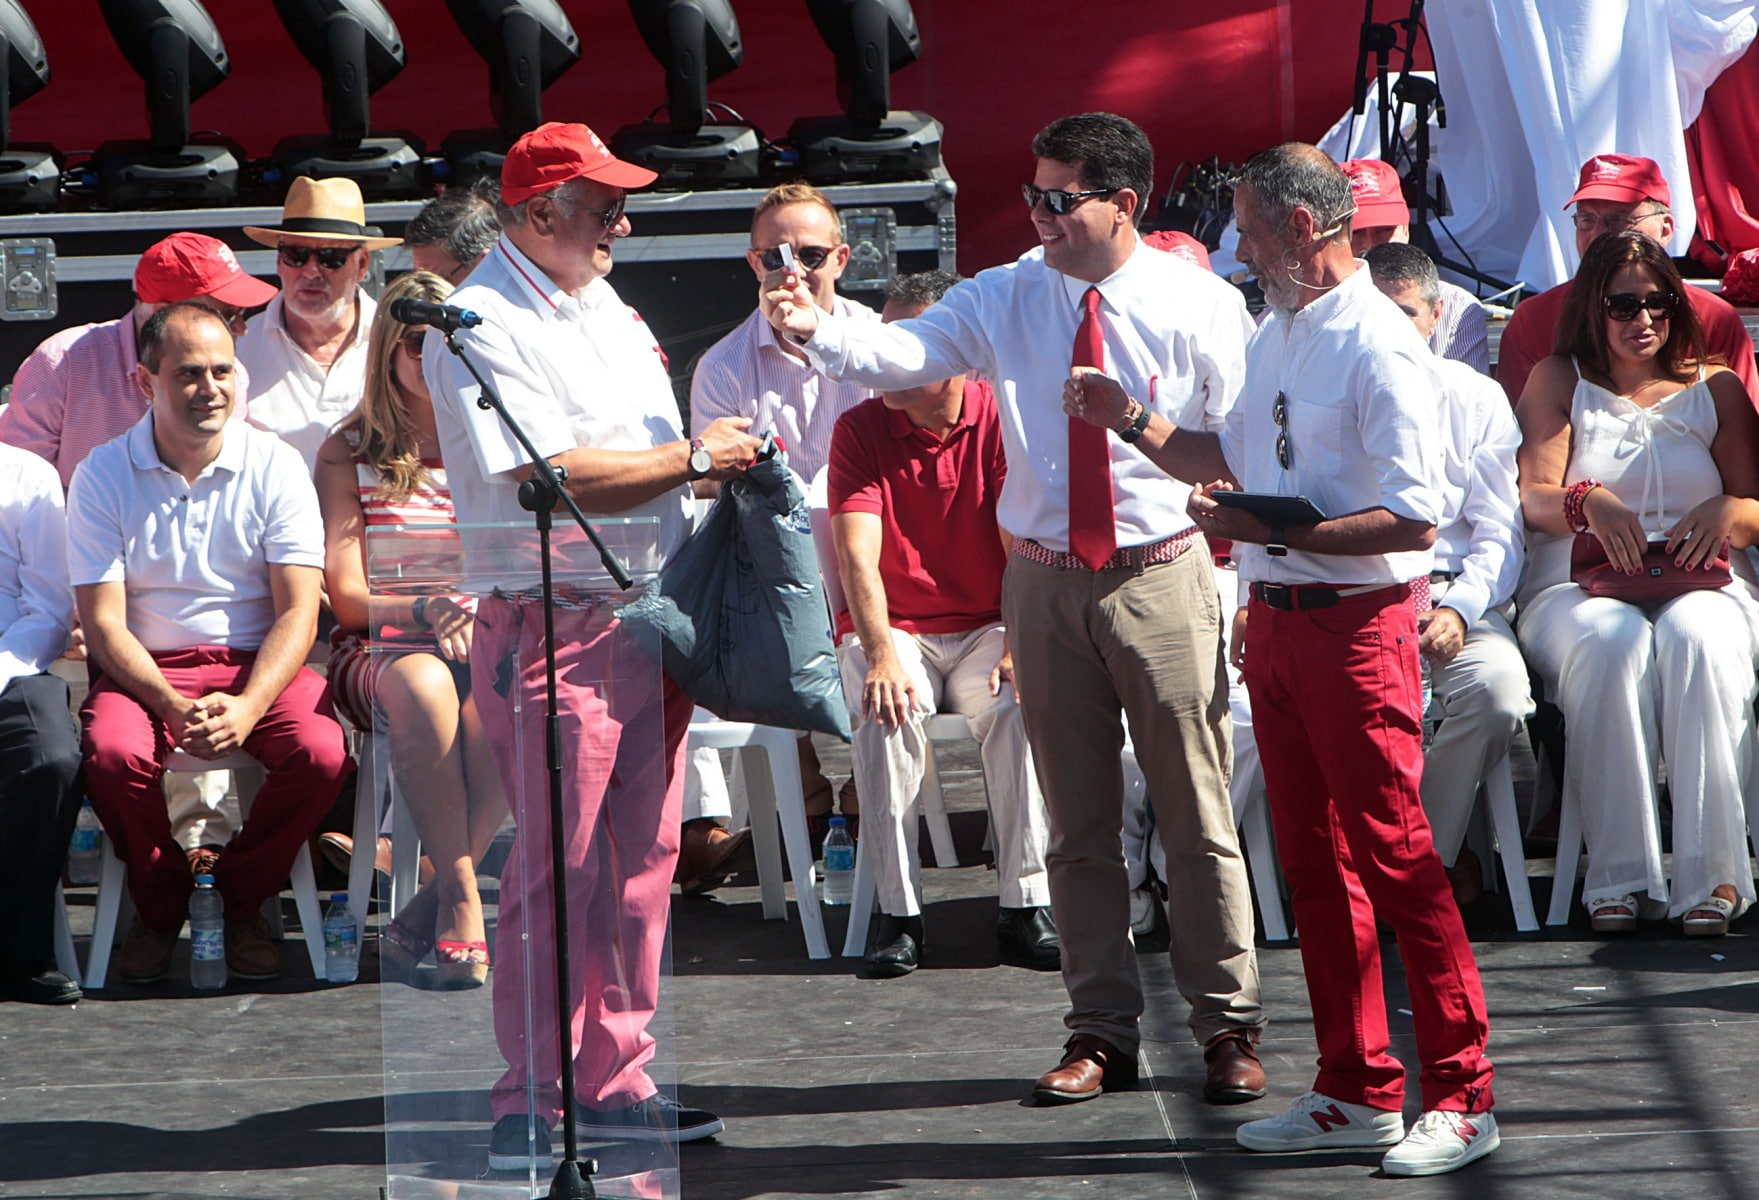 160910-national-day-gibraltar-2016-125_29494977692_o